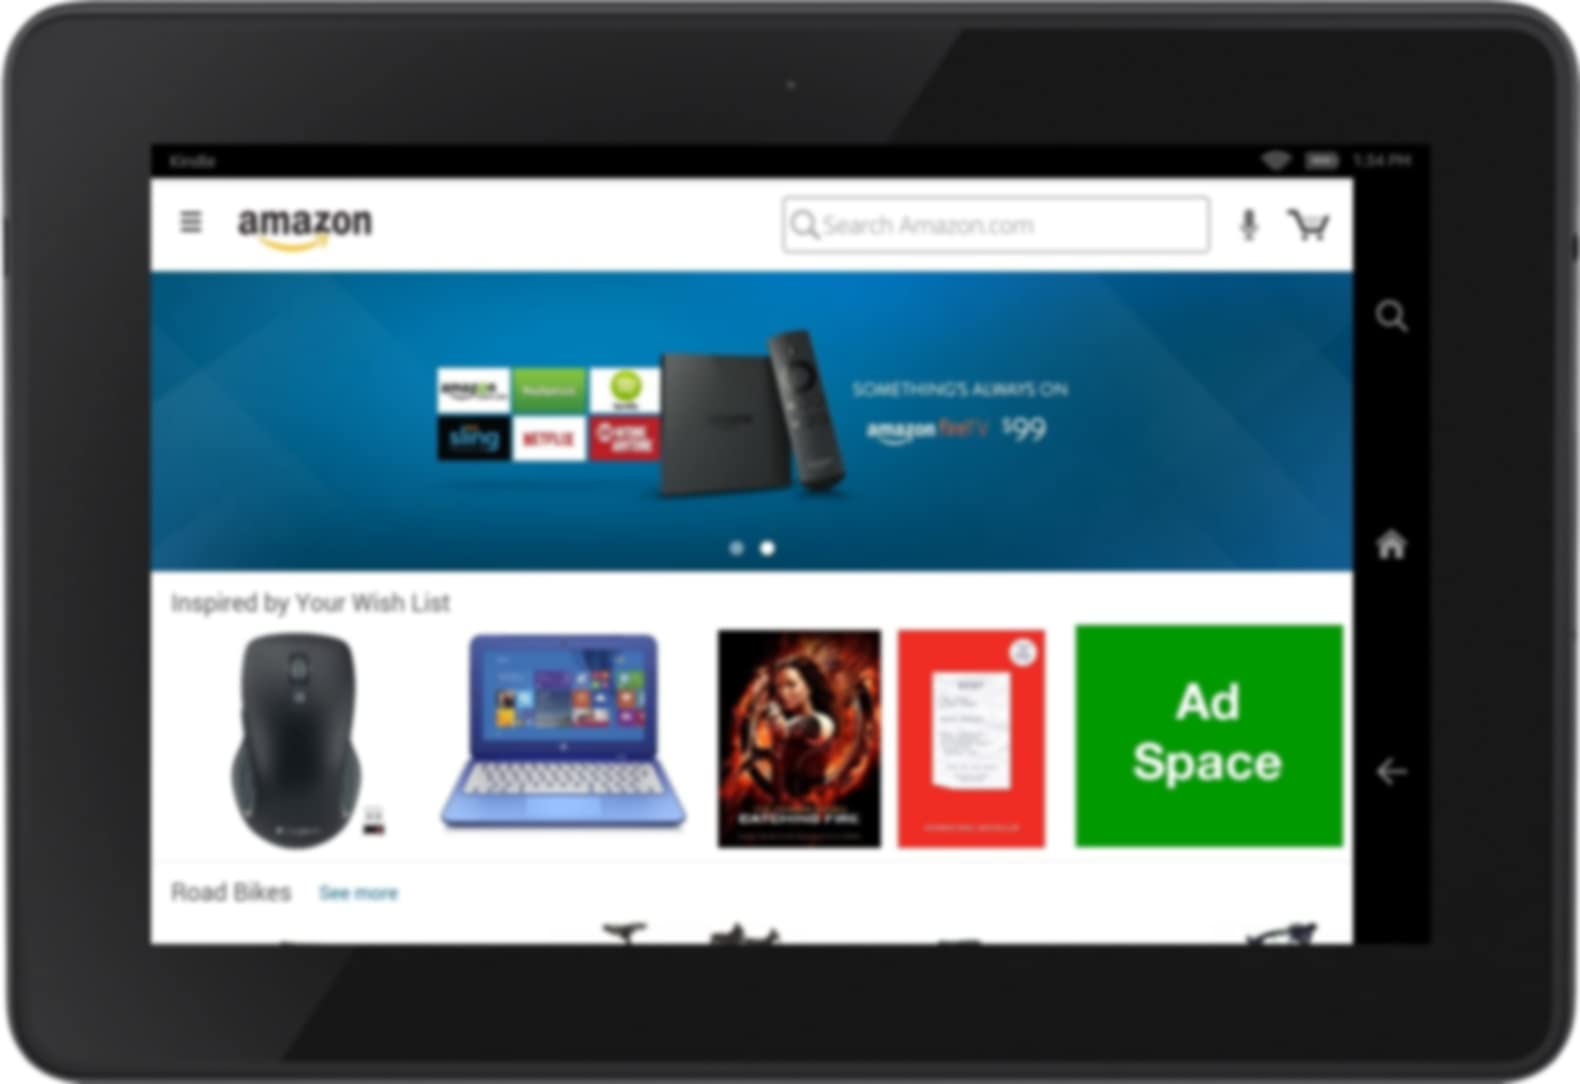 Ad placement on Fire tablet shopping app home page